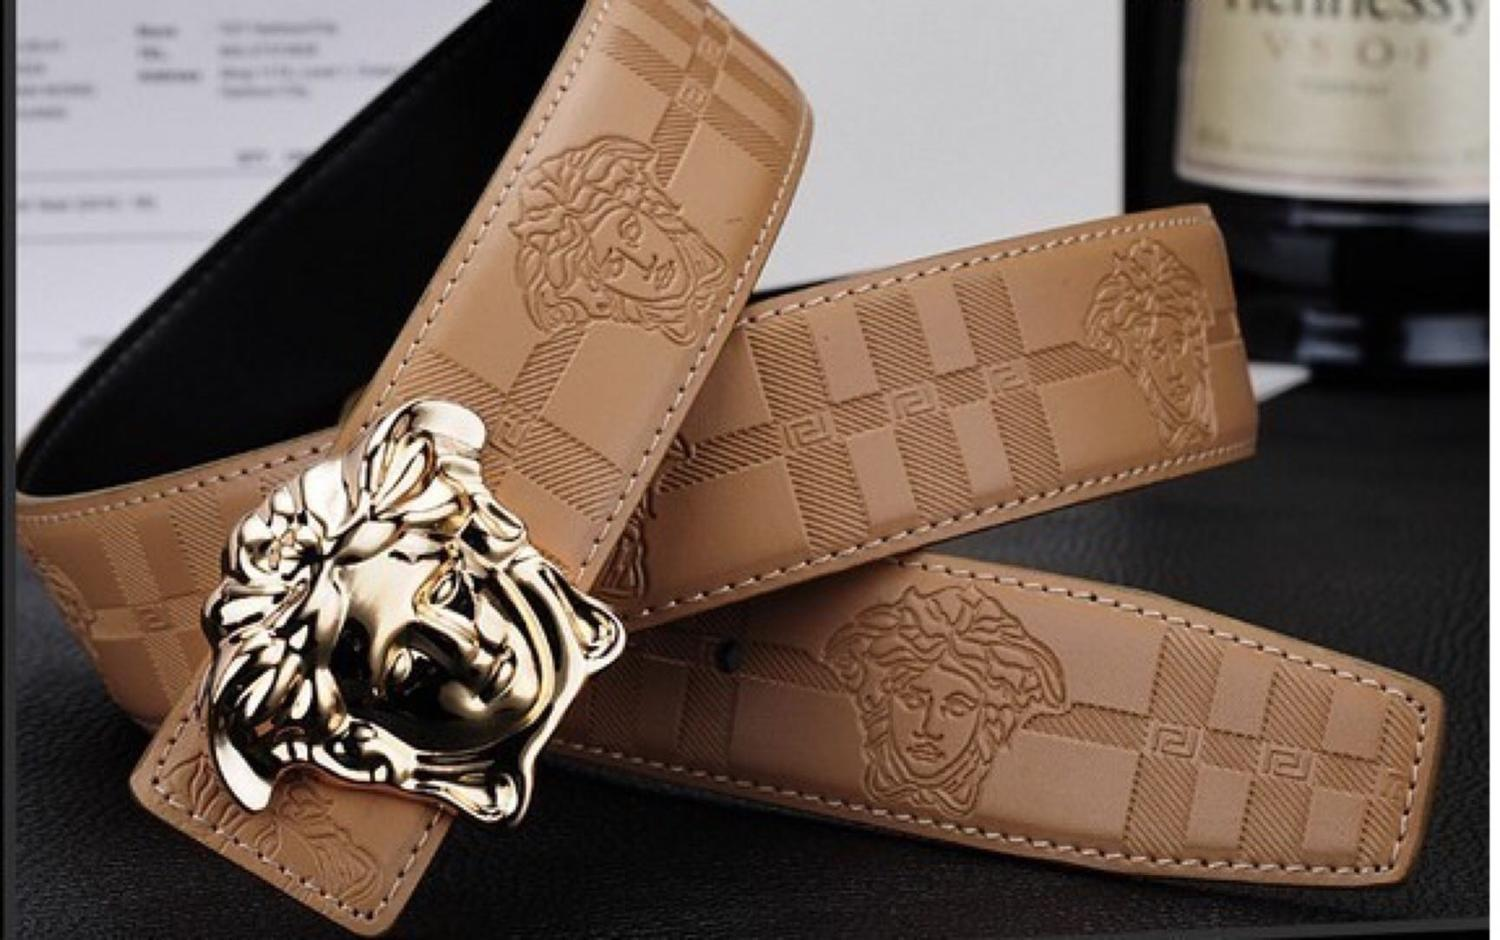 Medusa Head Versace Belt